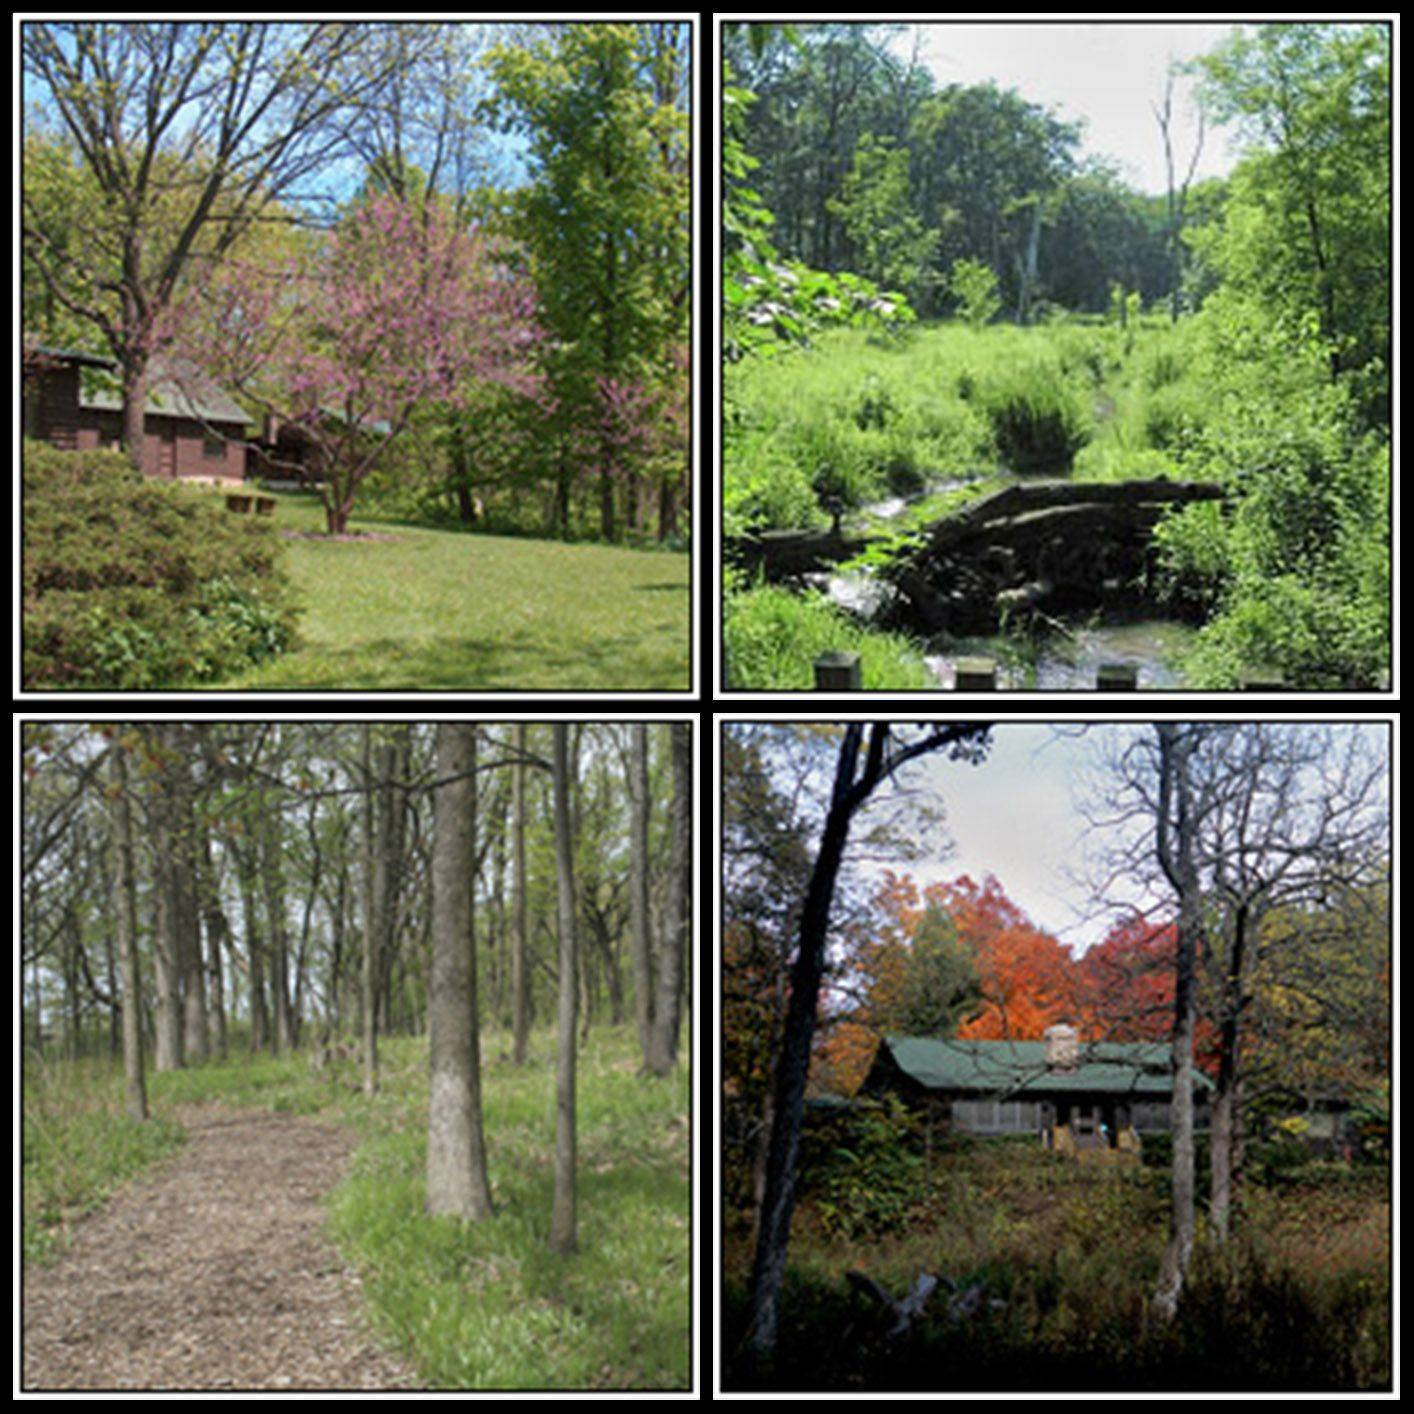 A Nature Walk with Sarah Schultz, habitat restoration volunteer for the Lake County Forest Preserve District and Reed-Turner Nature Preserve, will be May 4 at the Reed-Turner Woodland in Long Grove.